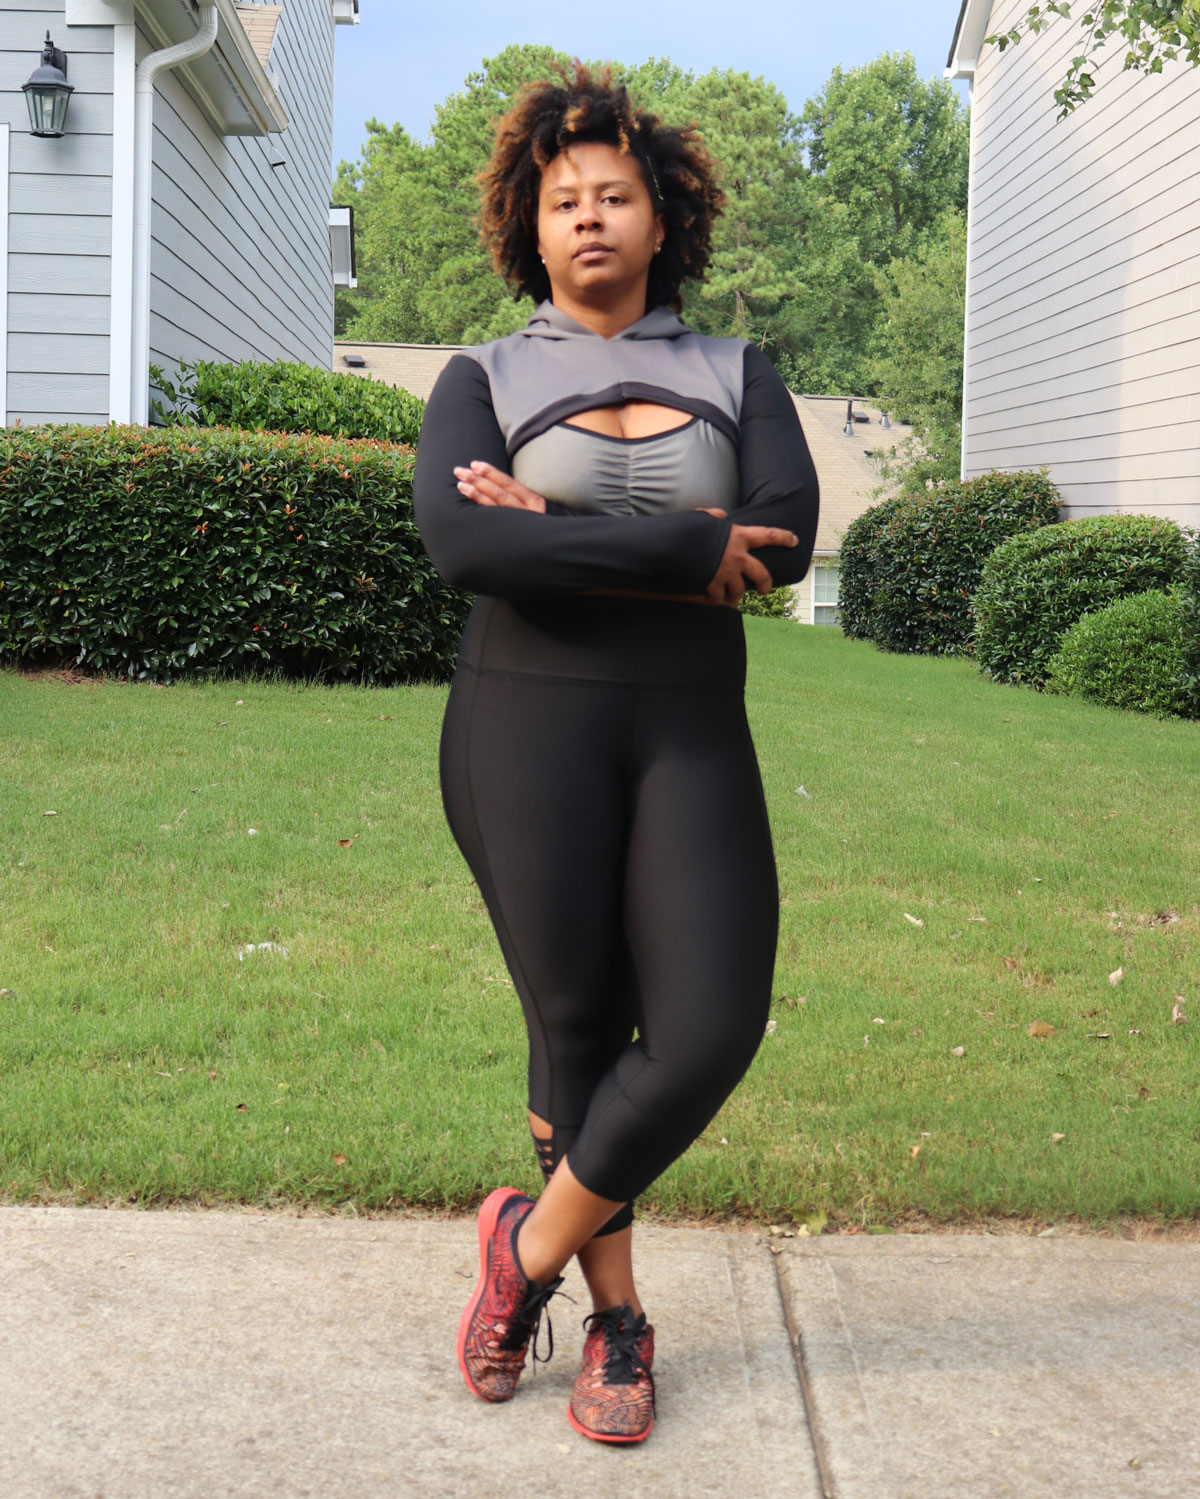 Tiffany stands on a sidewalk between two houses and yards. Her face is serious, as if she's about to show her workout that she means business. She's wearing her activewear: a stylish black and gray cropped warm-up hoodie, a gray sports bra with front ruching detail, and black high-waisted leggings with crossover elastic at the ankles. Her bright orange and gray sneakers stand out against the pavement of the sidewalk.